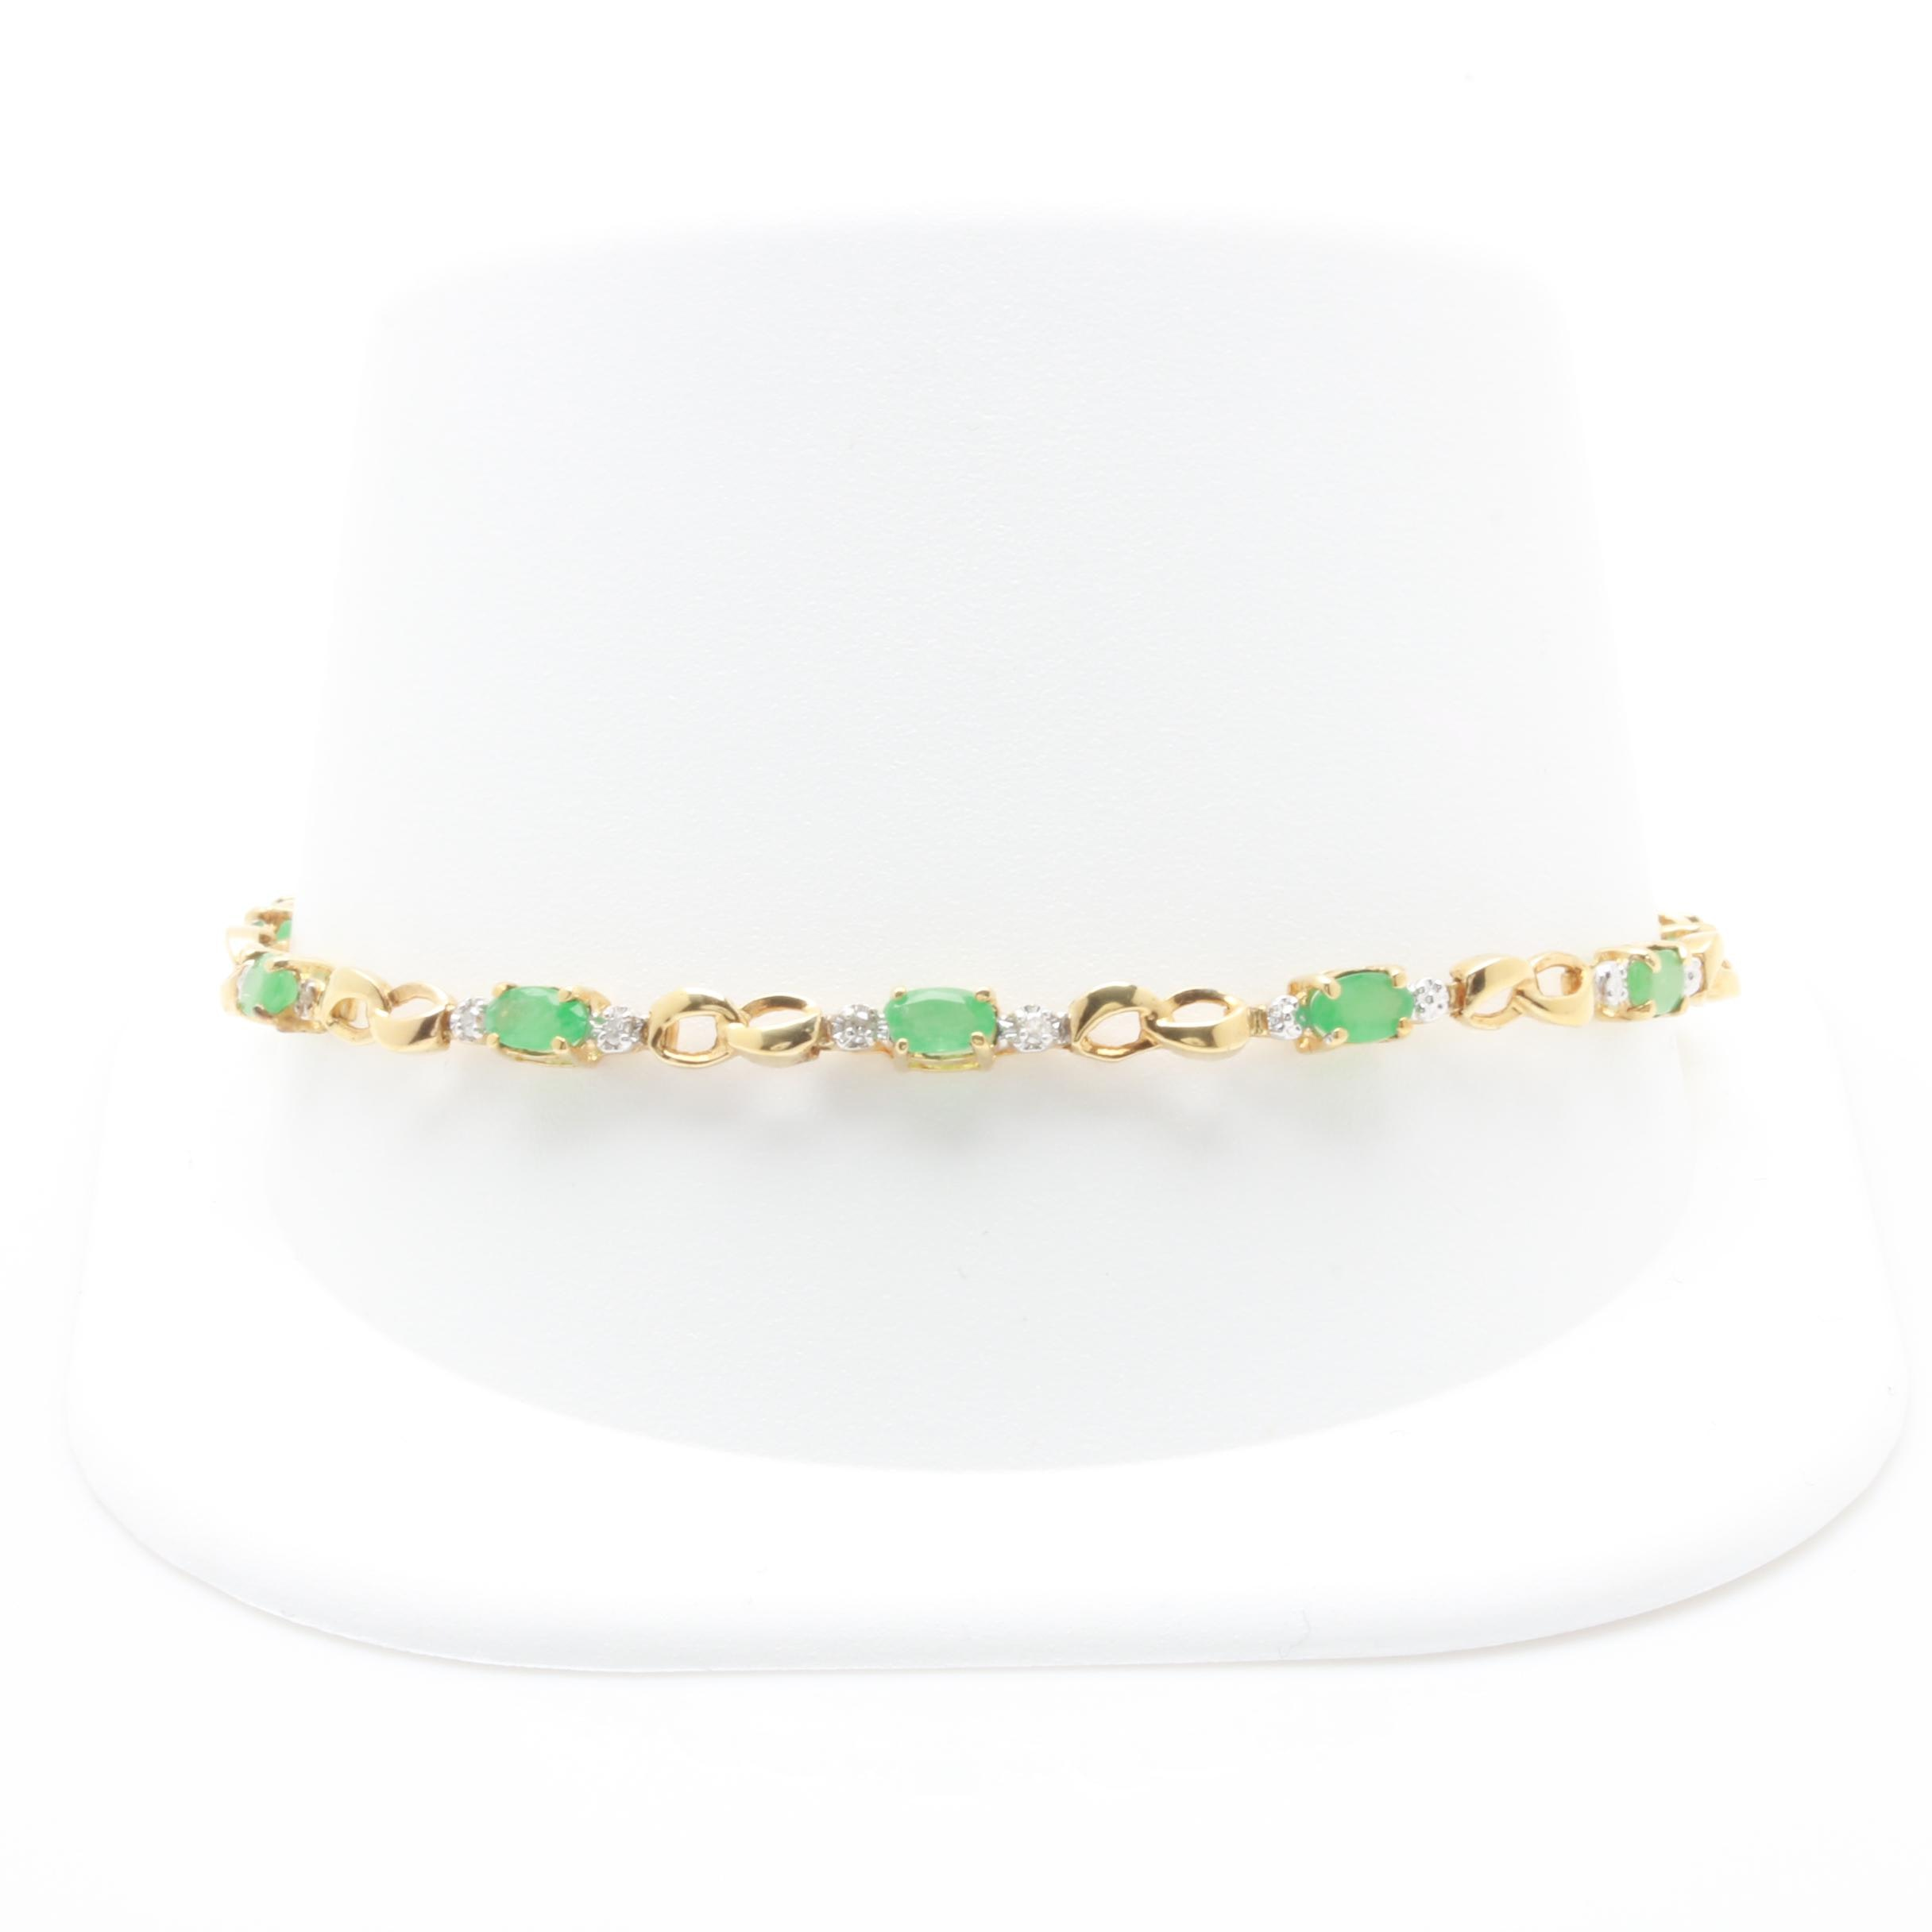 10K Yellow Gold Emerald and Diamond Link Bracelet